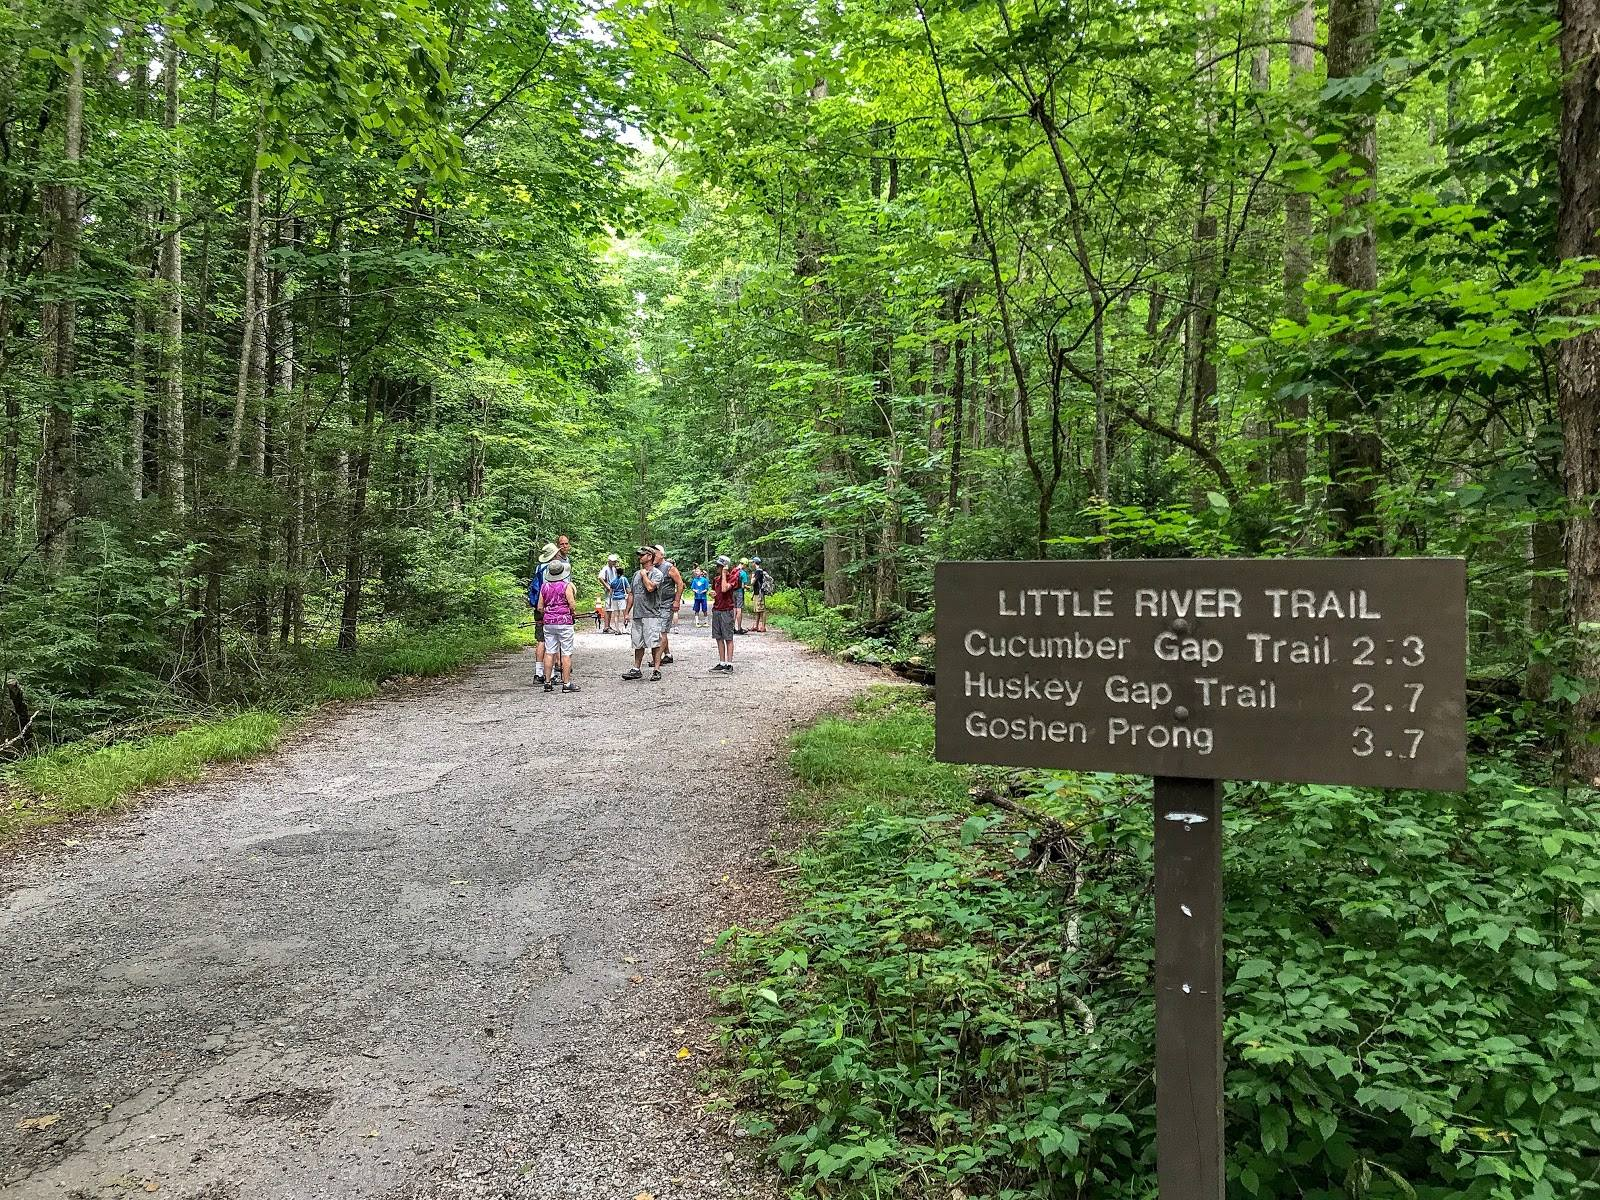 The trail offers river access, a relaxing walk in. Little River Trail An Easy Walk In The Smoky Mountains